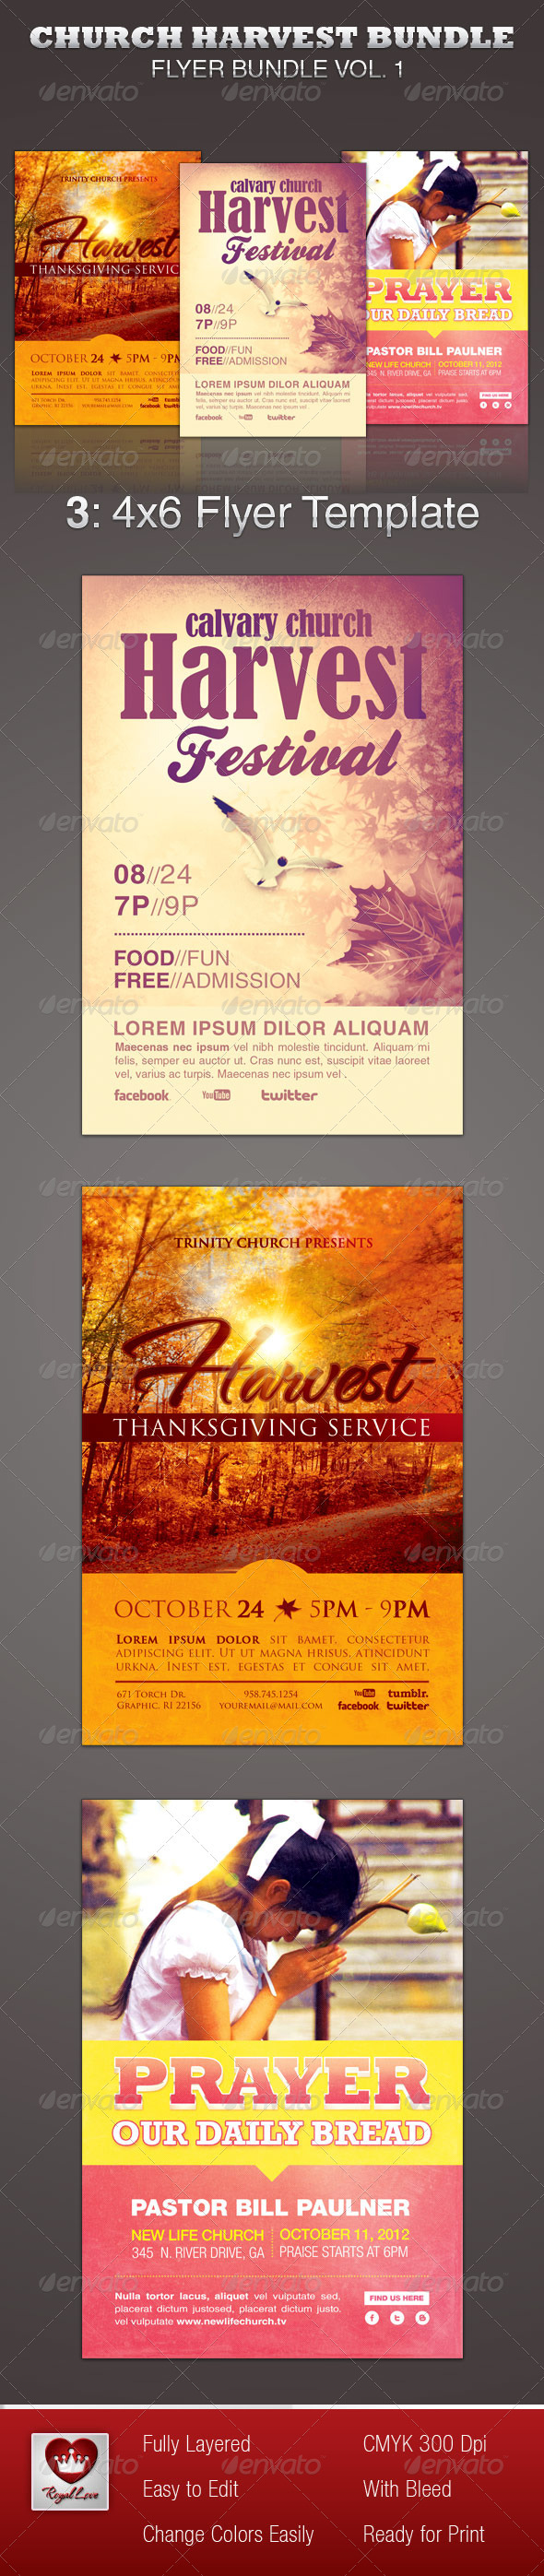 Church Harvest Flyer Template Bundle - Church Flyers